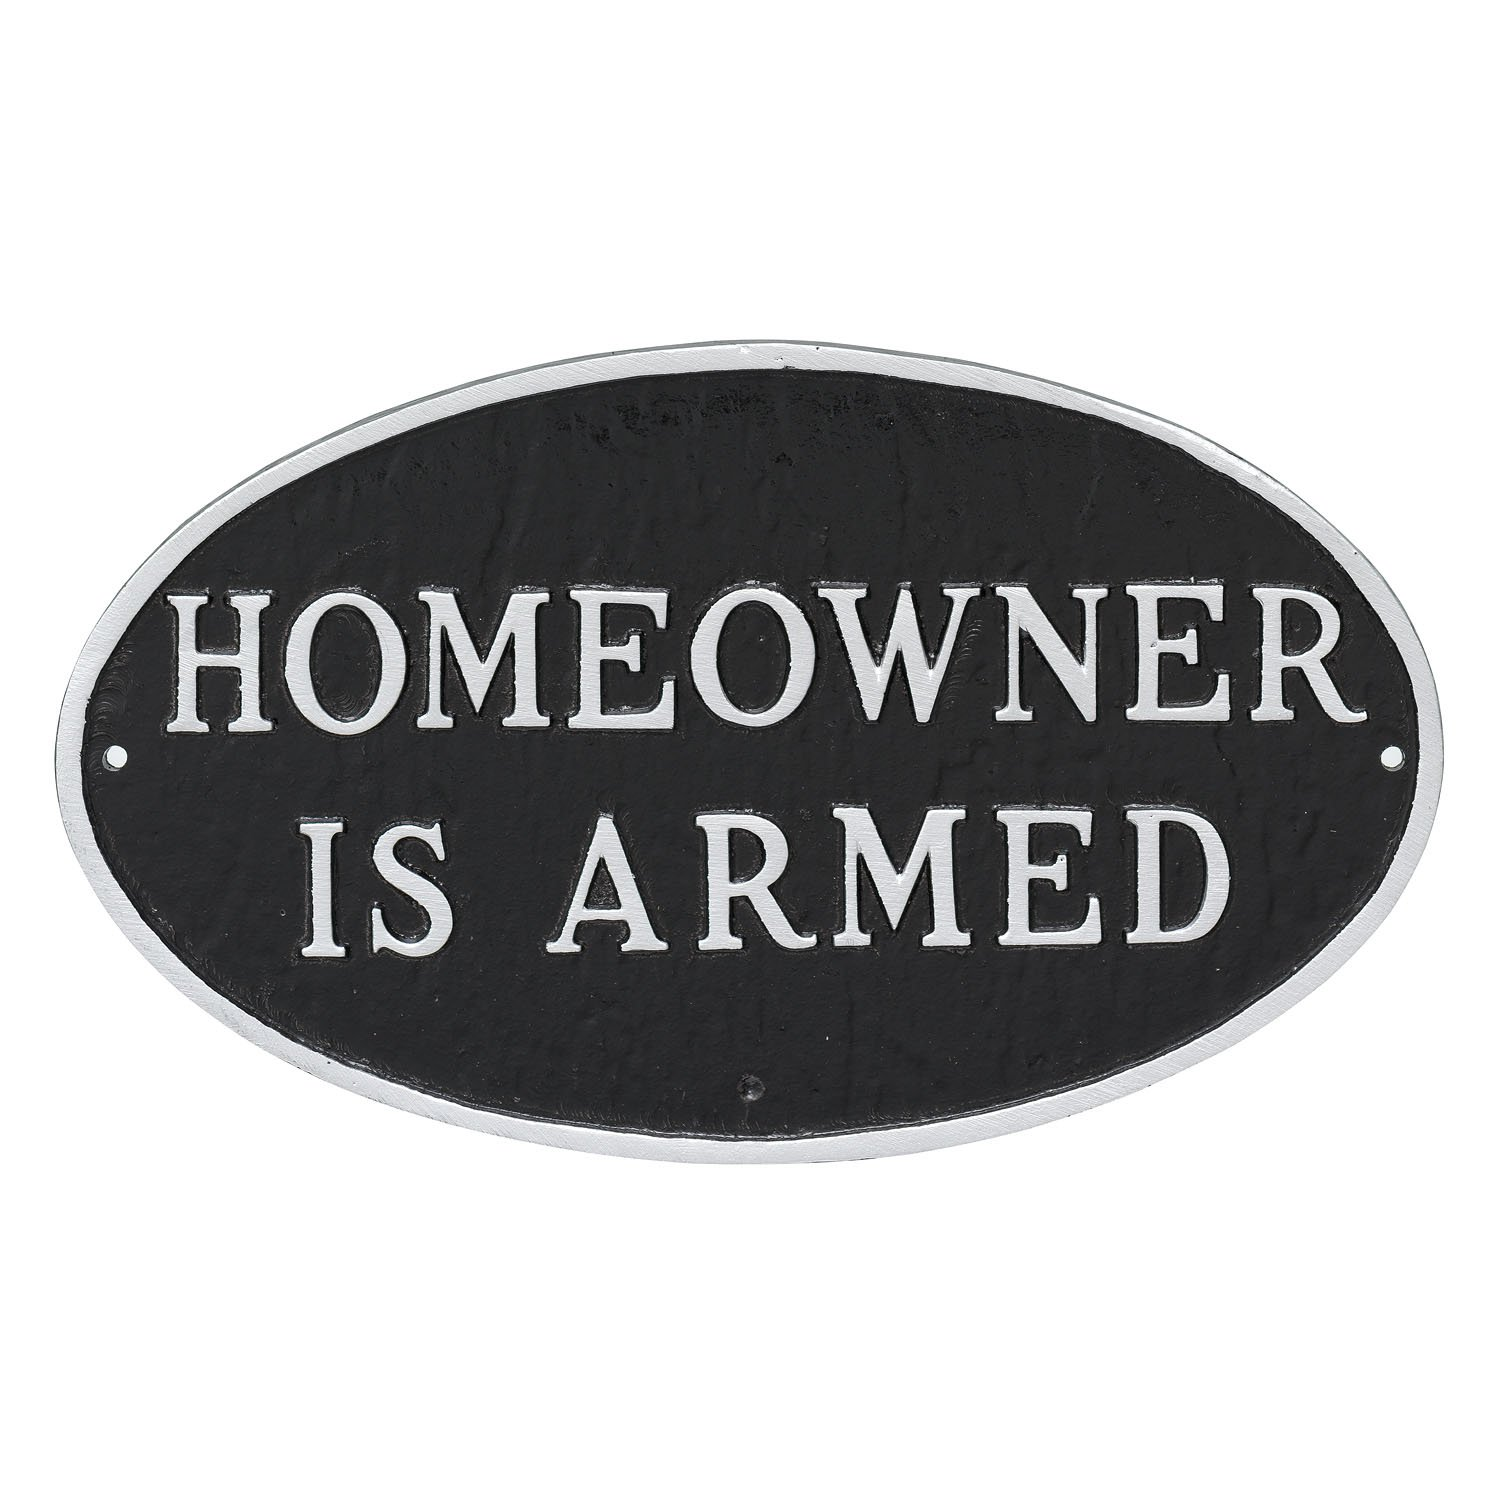 Montague Metal Products Oval Homeowner is Armed Statement Plaque Sign, Black with Silver Lettering, 6'' x 10''